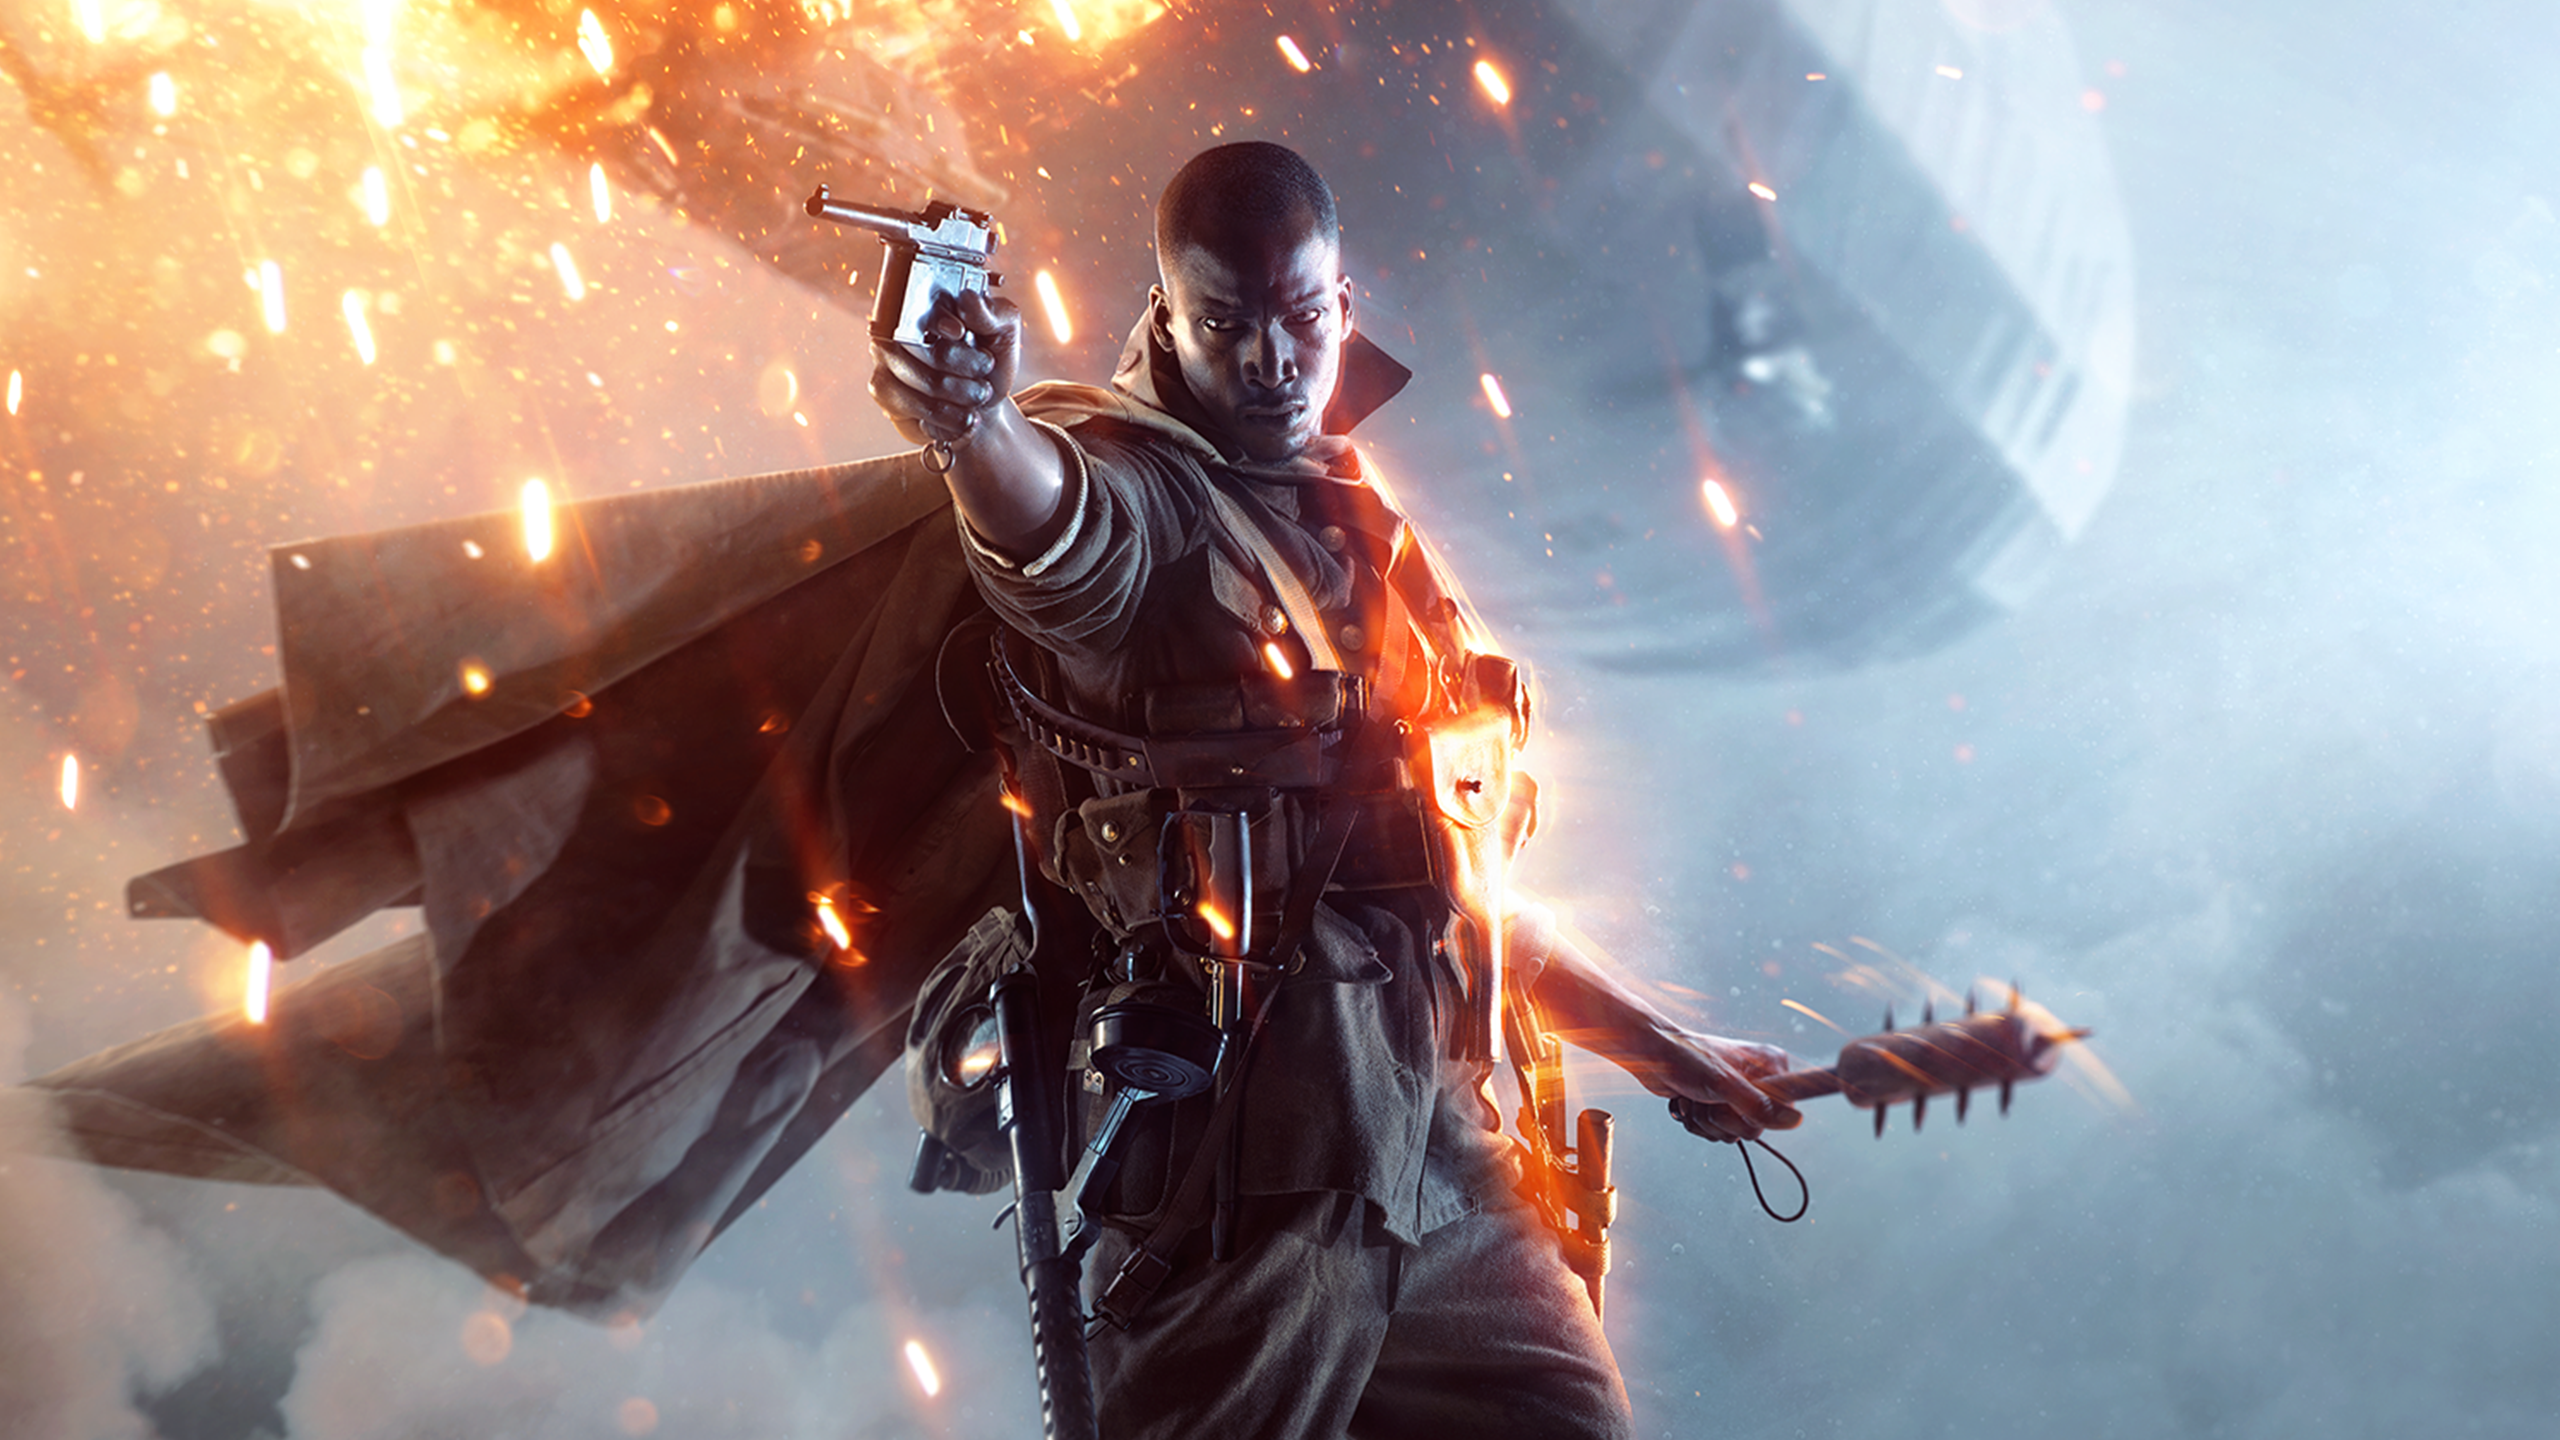 battlefield 1 wallpapers pictures - photo #10